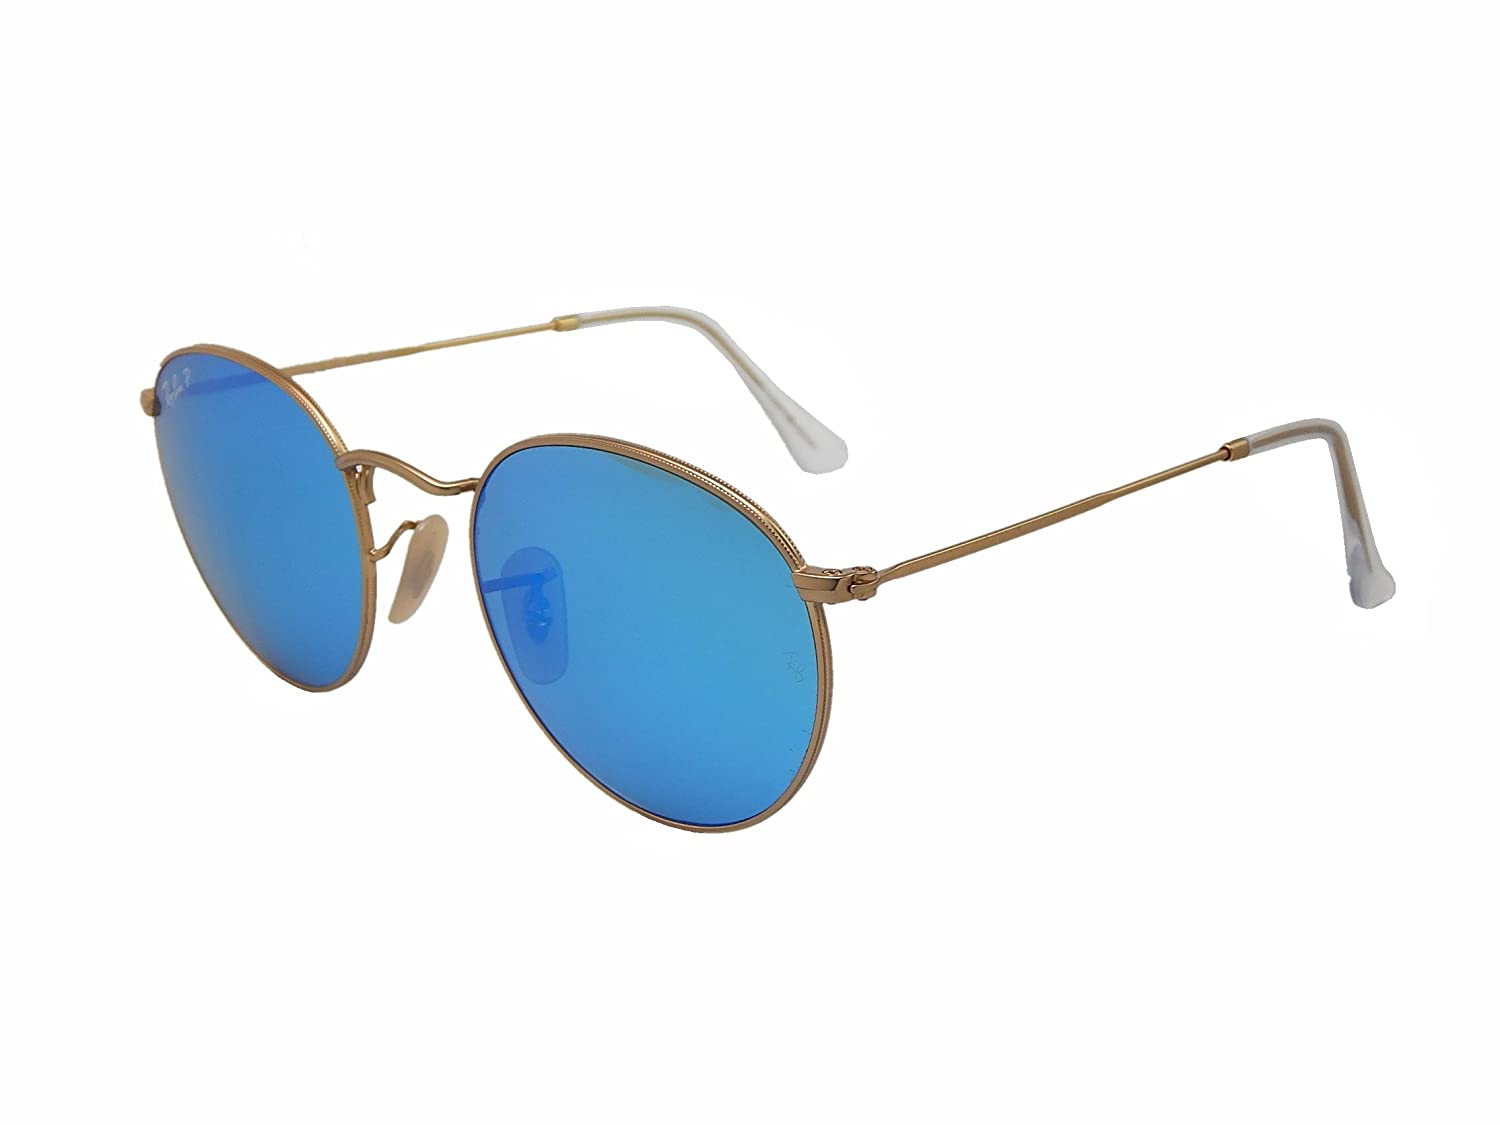 5da57ead948 Amazon.com  Ray Ban Round Metal RB3447 112 4L Gold Blue mirror 50mm  Polarized Sunglasses  Clothing